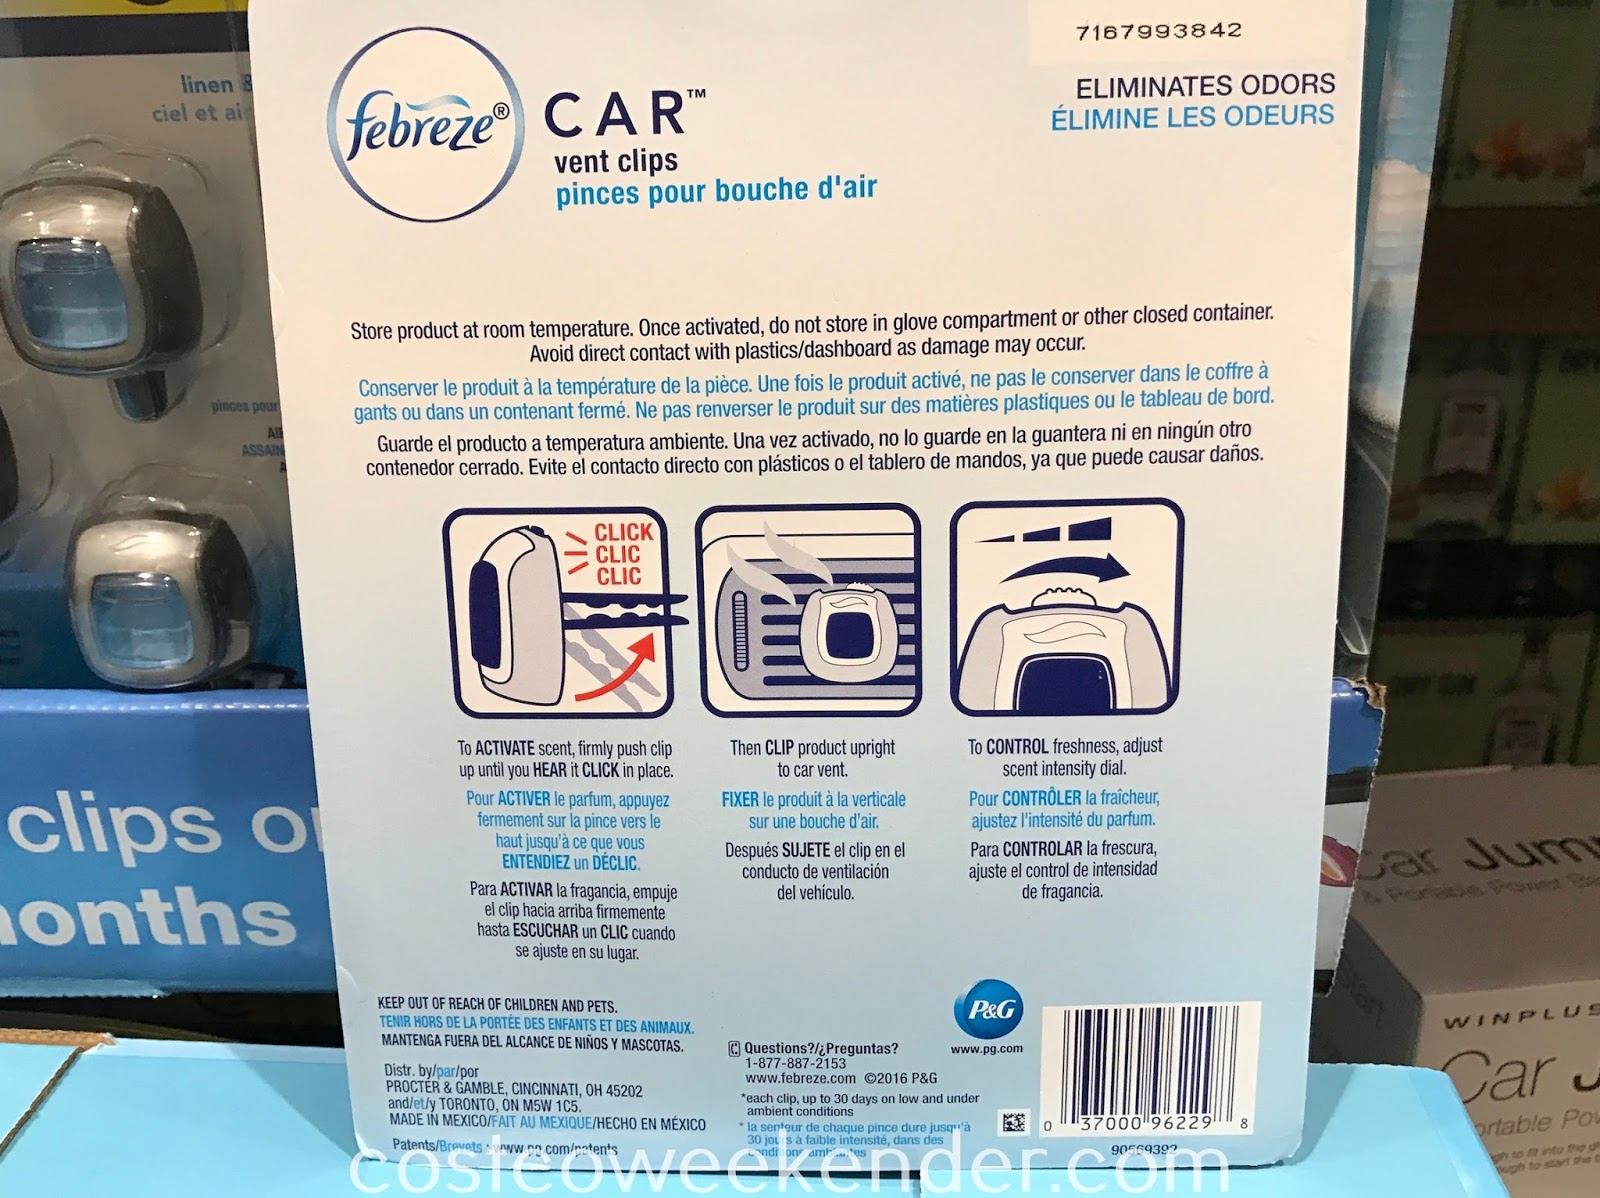 Costco 1160221 - Febreze Car Vent Clip Air Fresheners: great for keeping your car smelling fresh